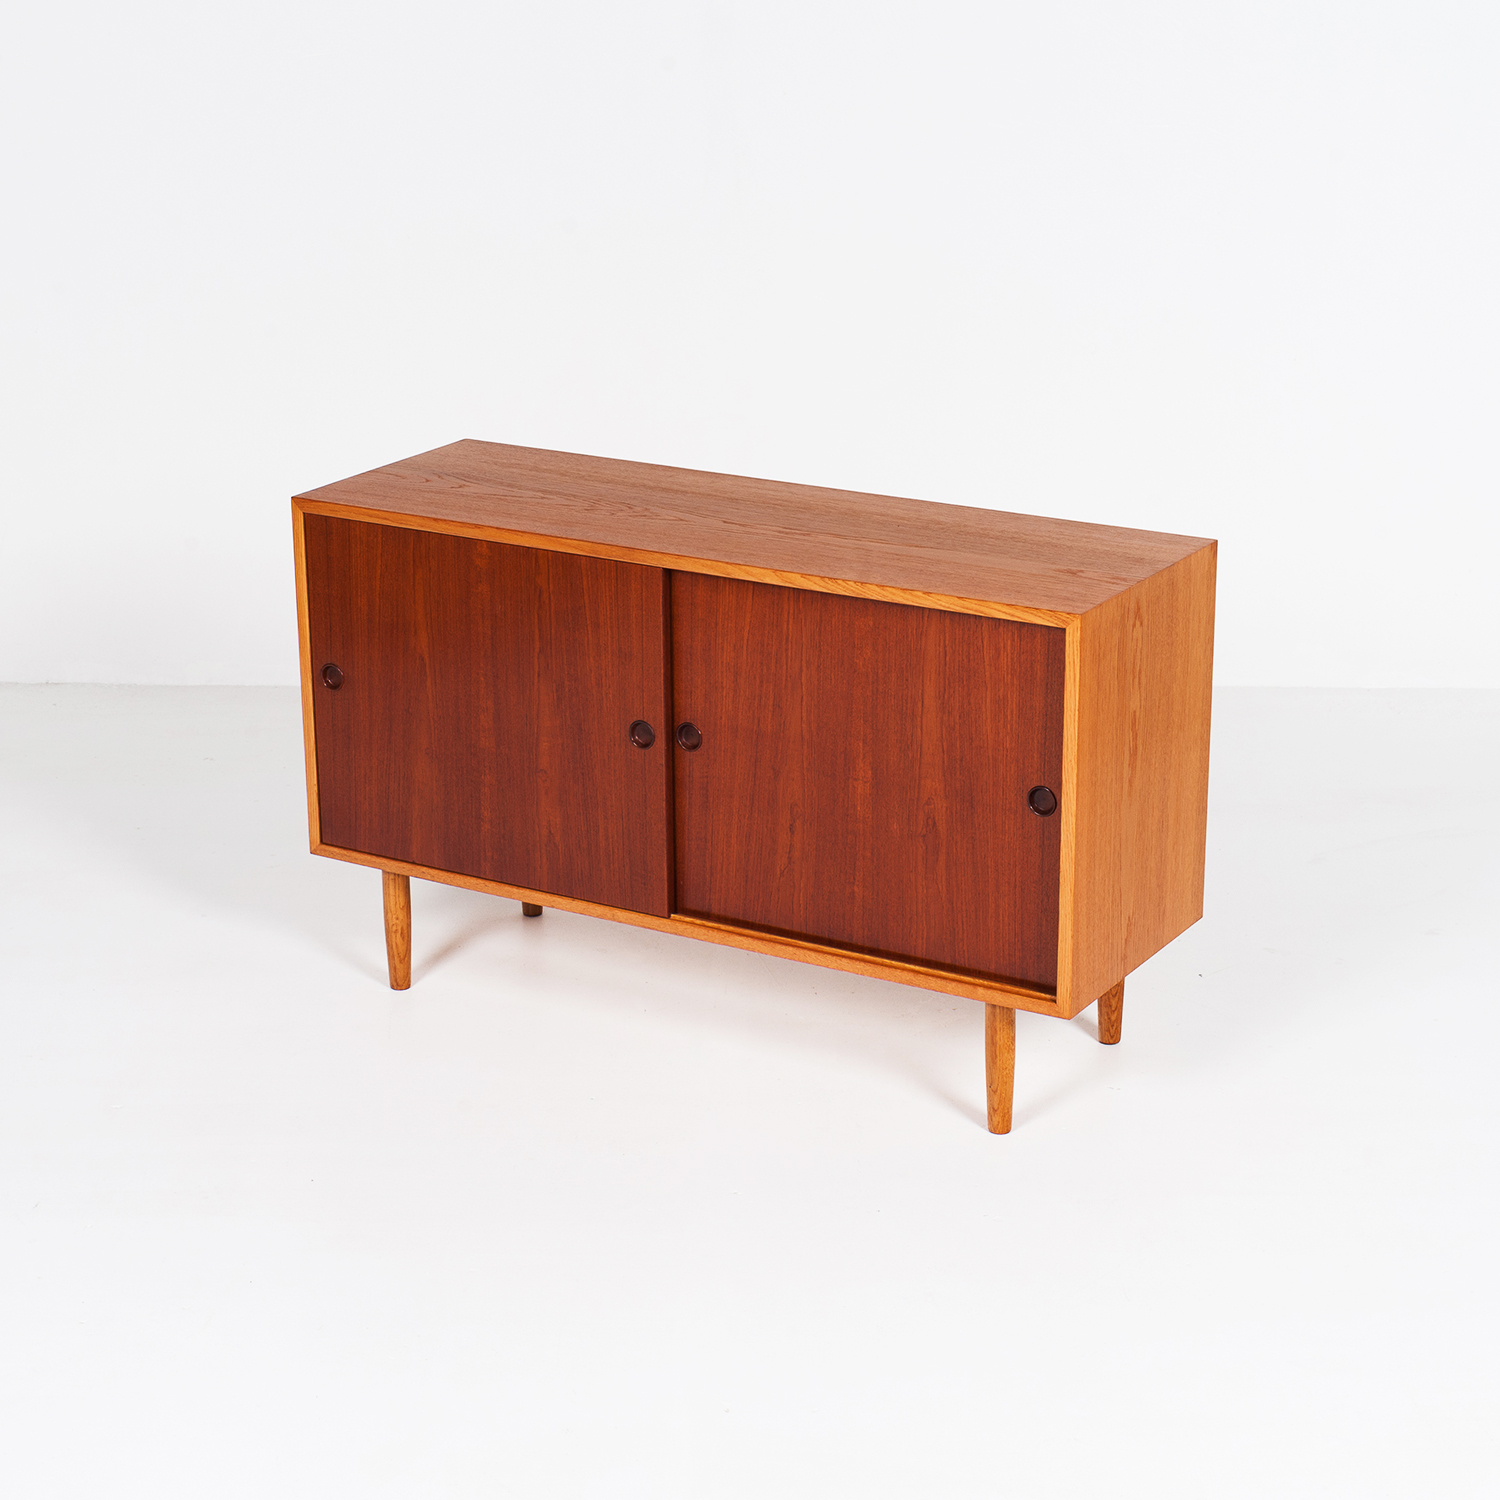 Oak Cabinet With Teak Doors By Borge Mogensen For Karl Andersson's, 1960s, Denmark6264 Copy